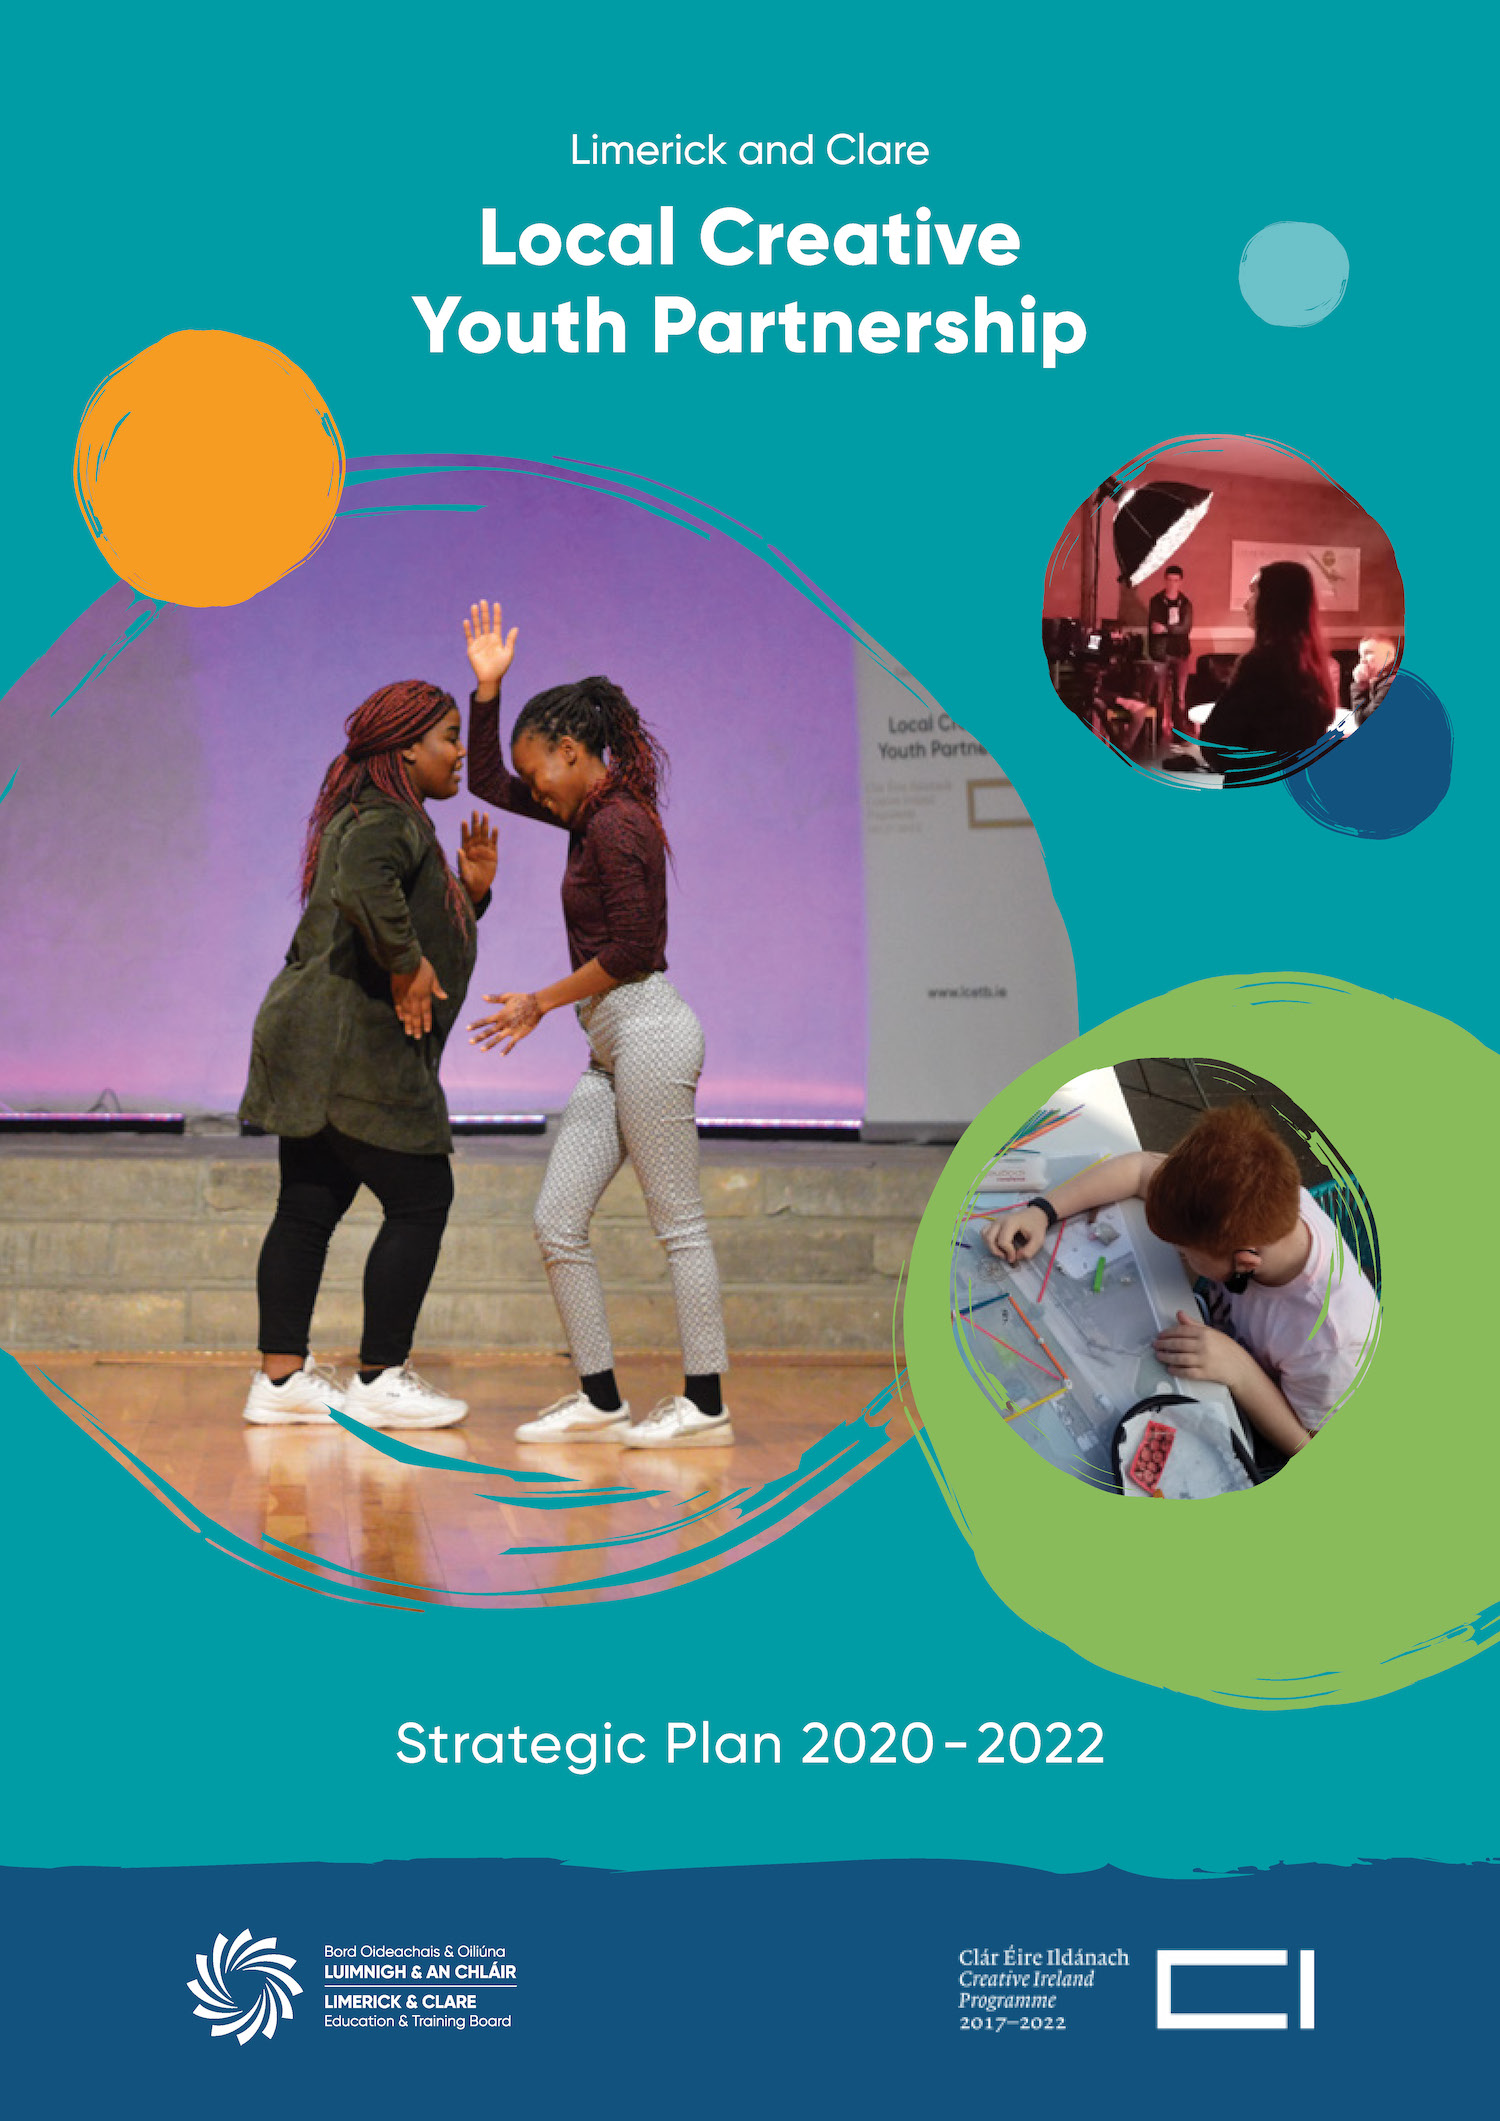 The Strategic Plan identifies specific groups of young people to be prioritised in the establishment of creative programmes across Limerick and Clare